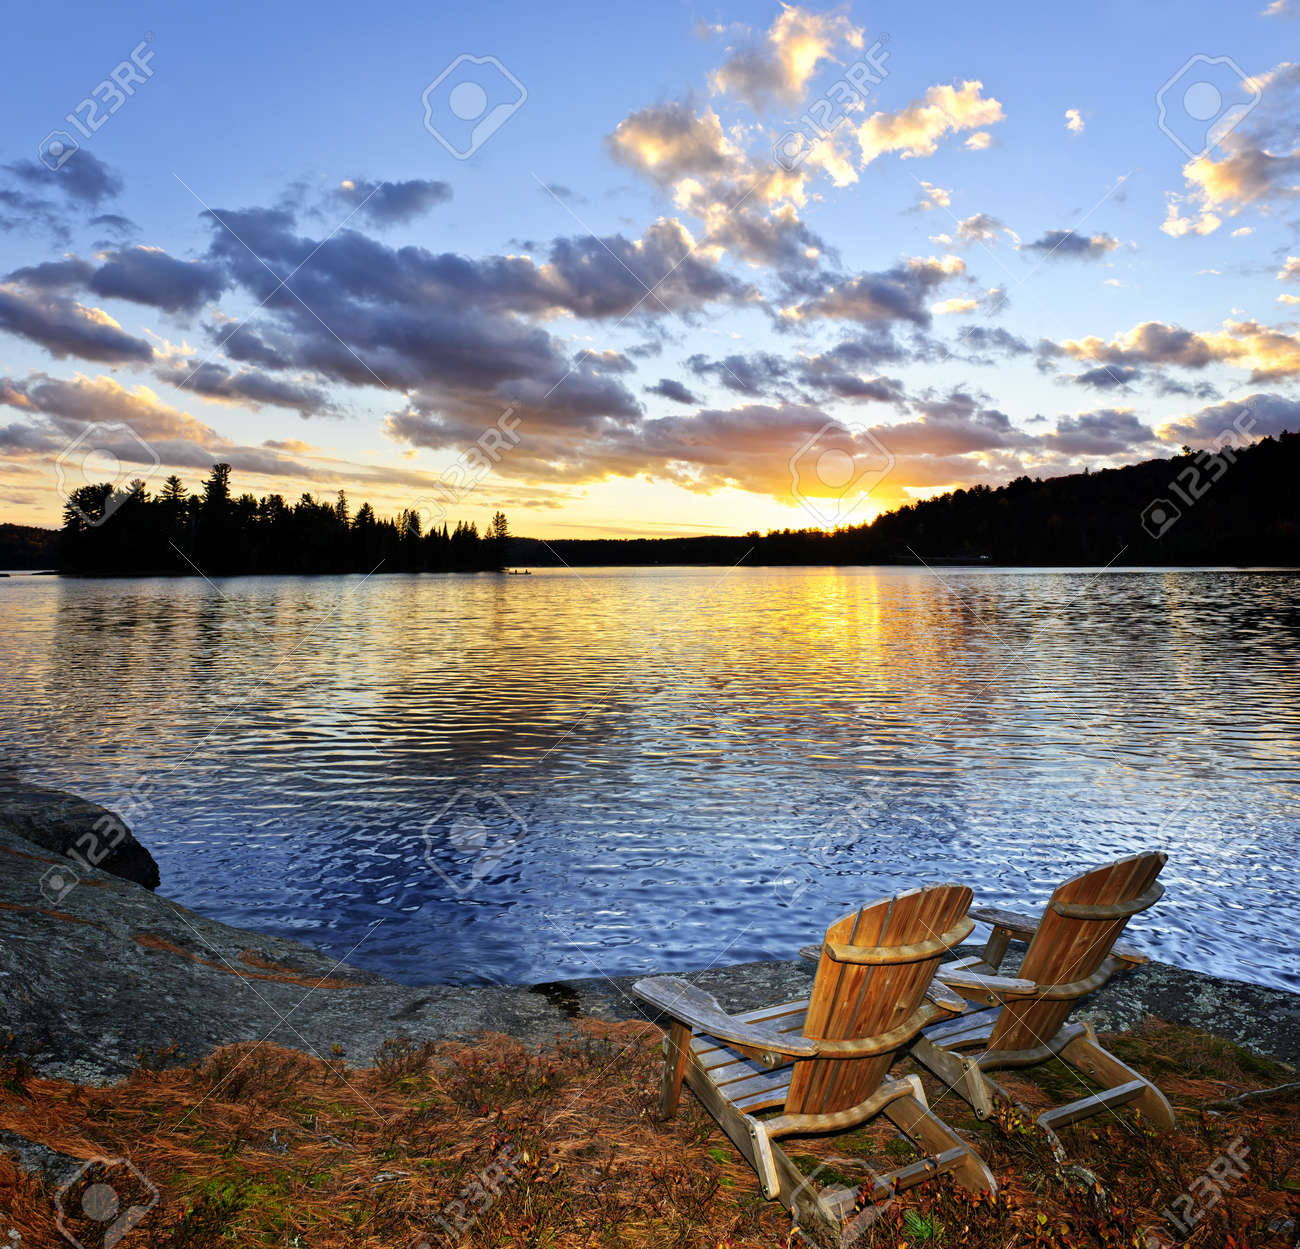 Beach sunset with chairs - Stock Photo Wooden Chair On Beach Of Relaxing Lake At Sunset In Algonquin Park Canada